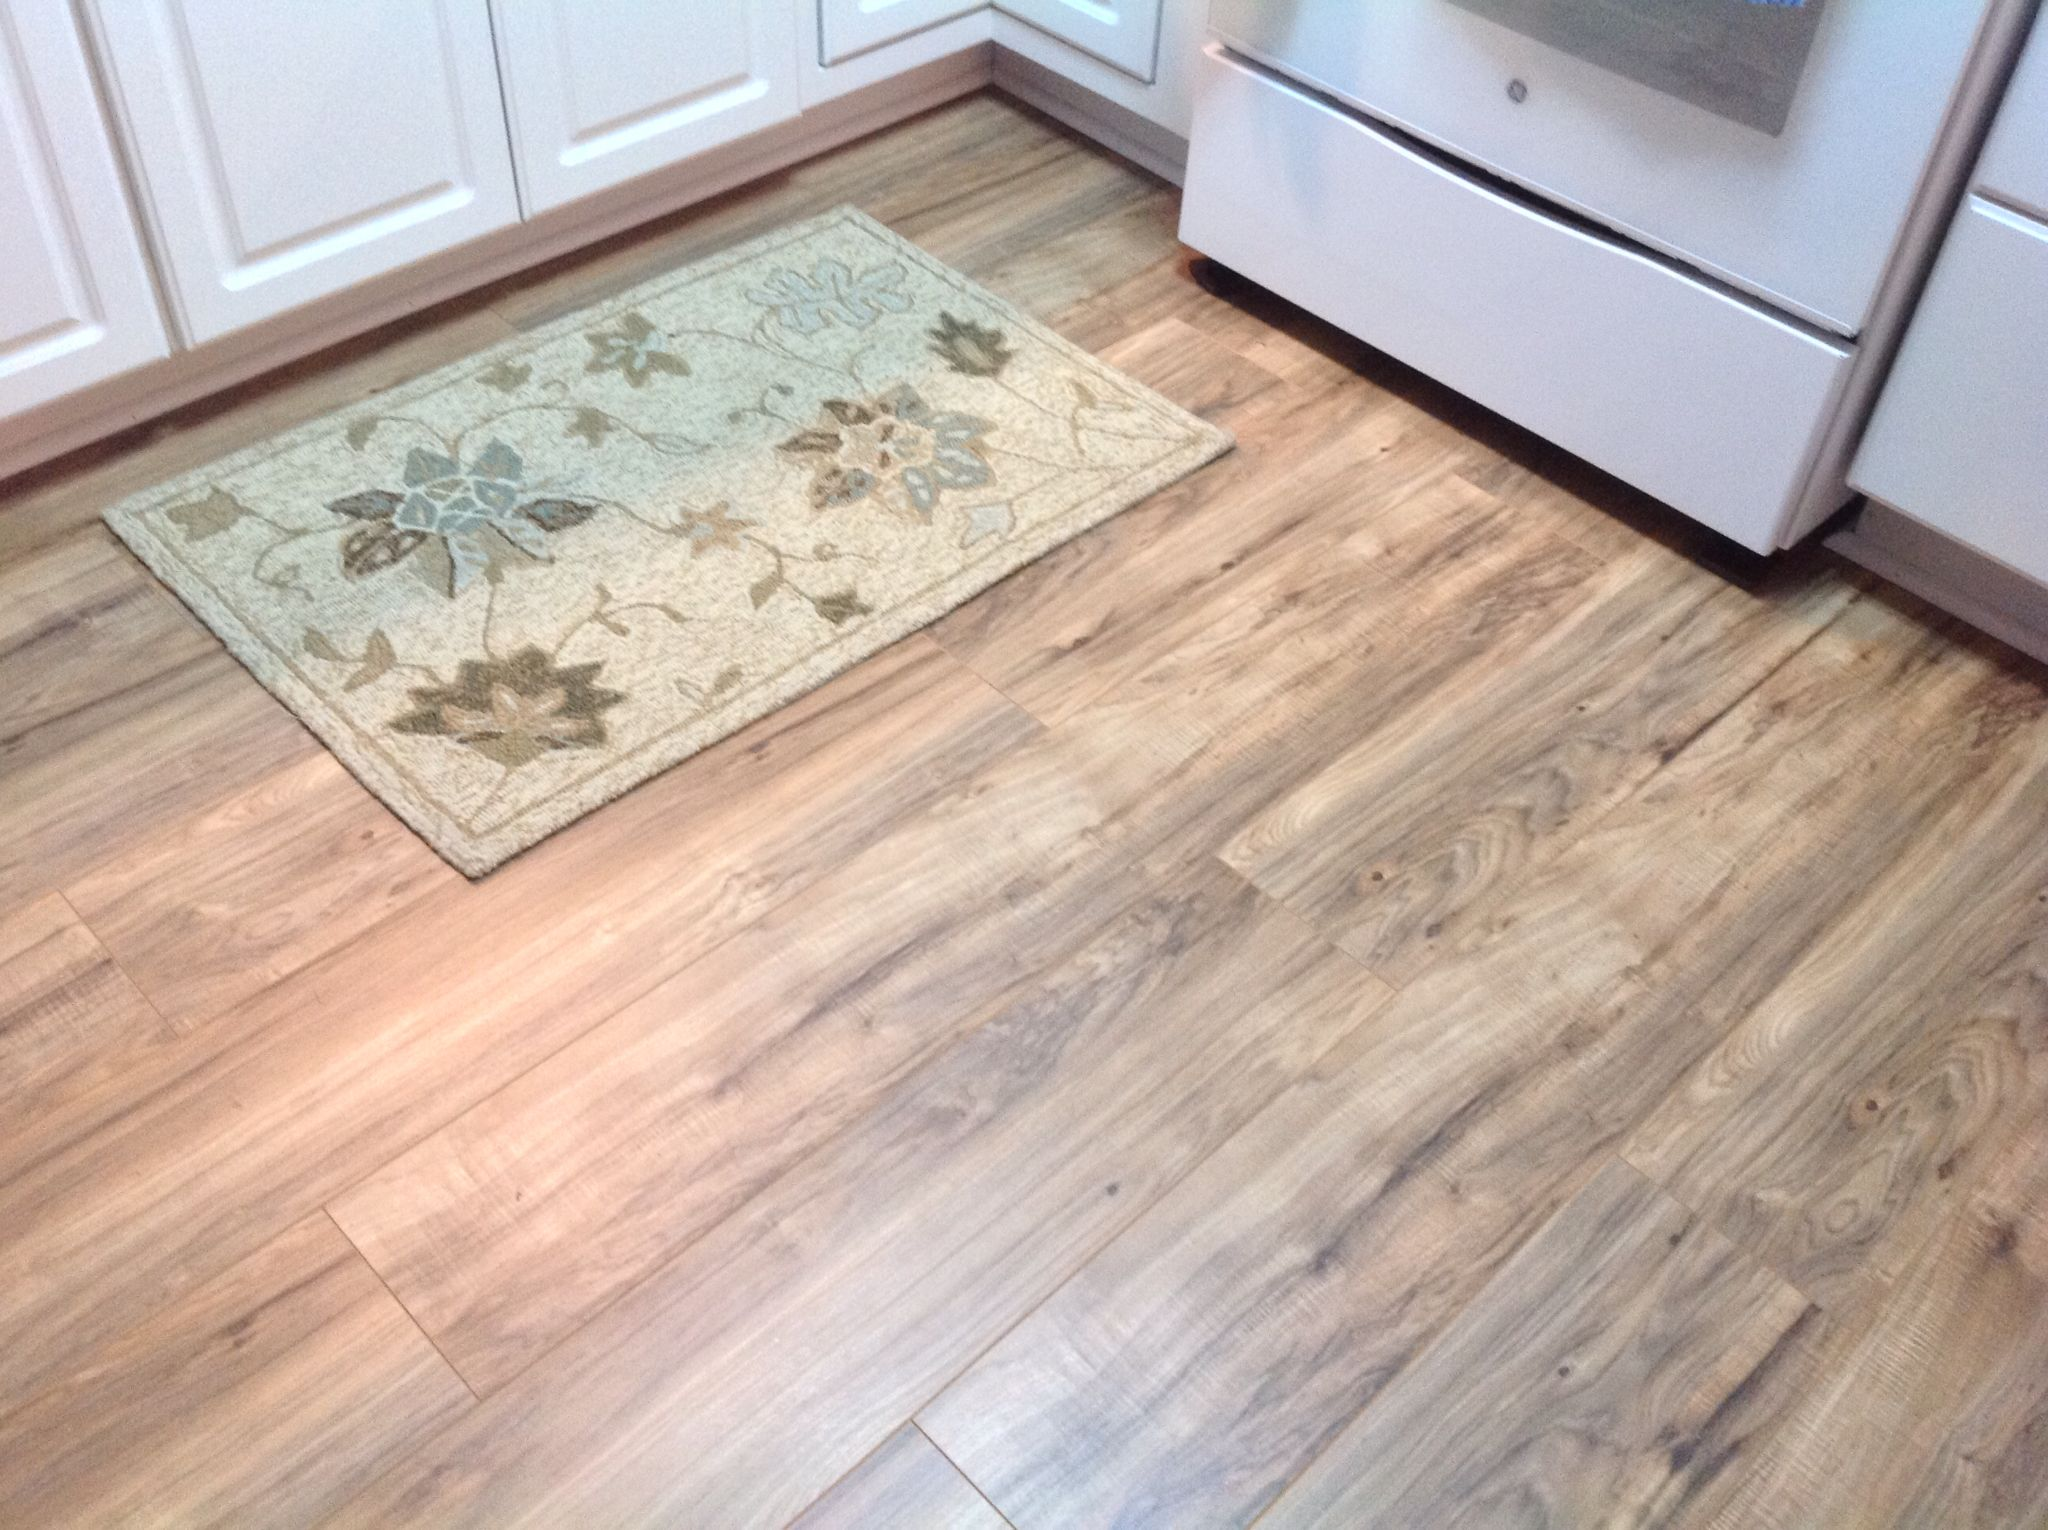 DONE The finished kitchen area using TrafficMaster Lakeshore Pecan